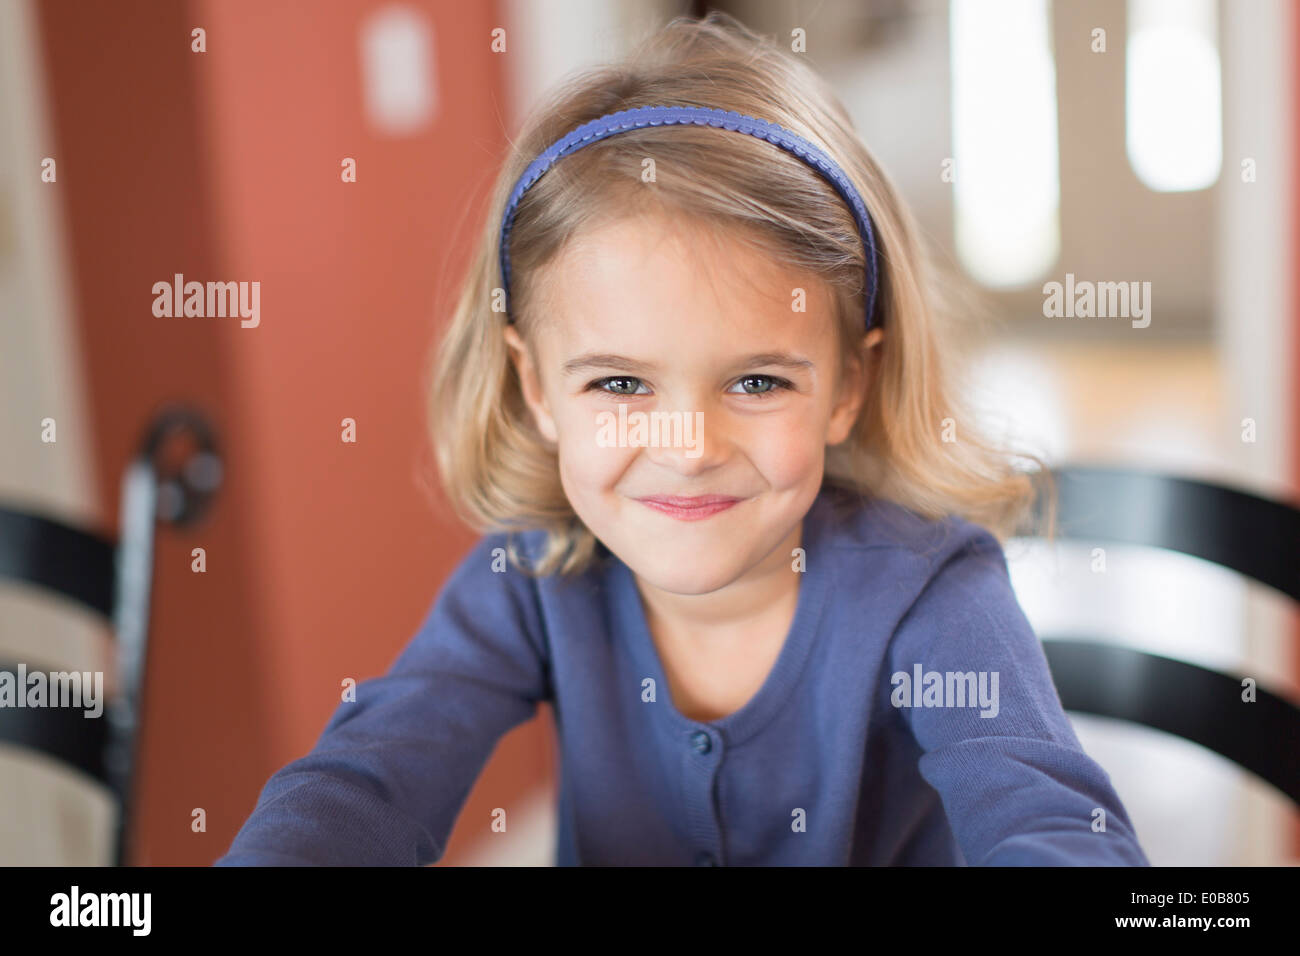 Portrait of smiling cute young girl - Stock Image